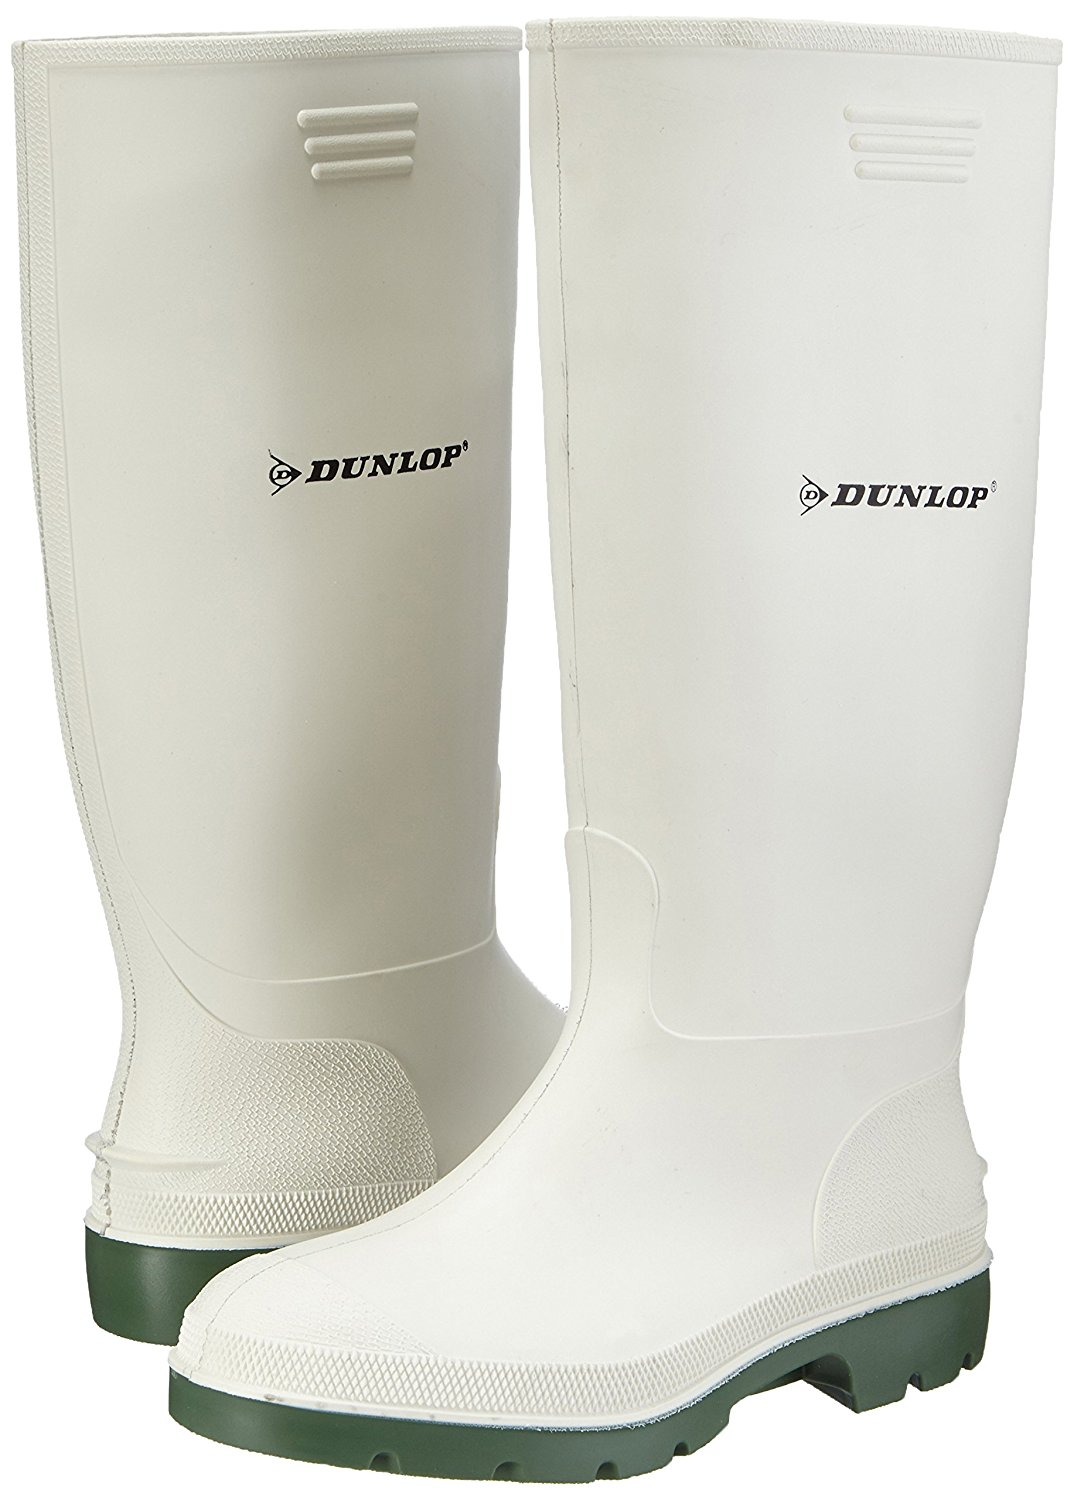 Dunlop Pricemaster White Wellingtons 380BV Non Safety Dunlop Wellingtons